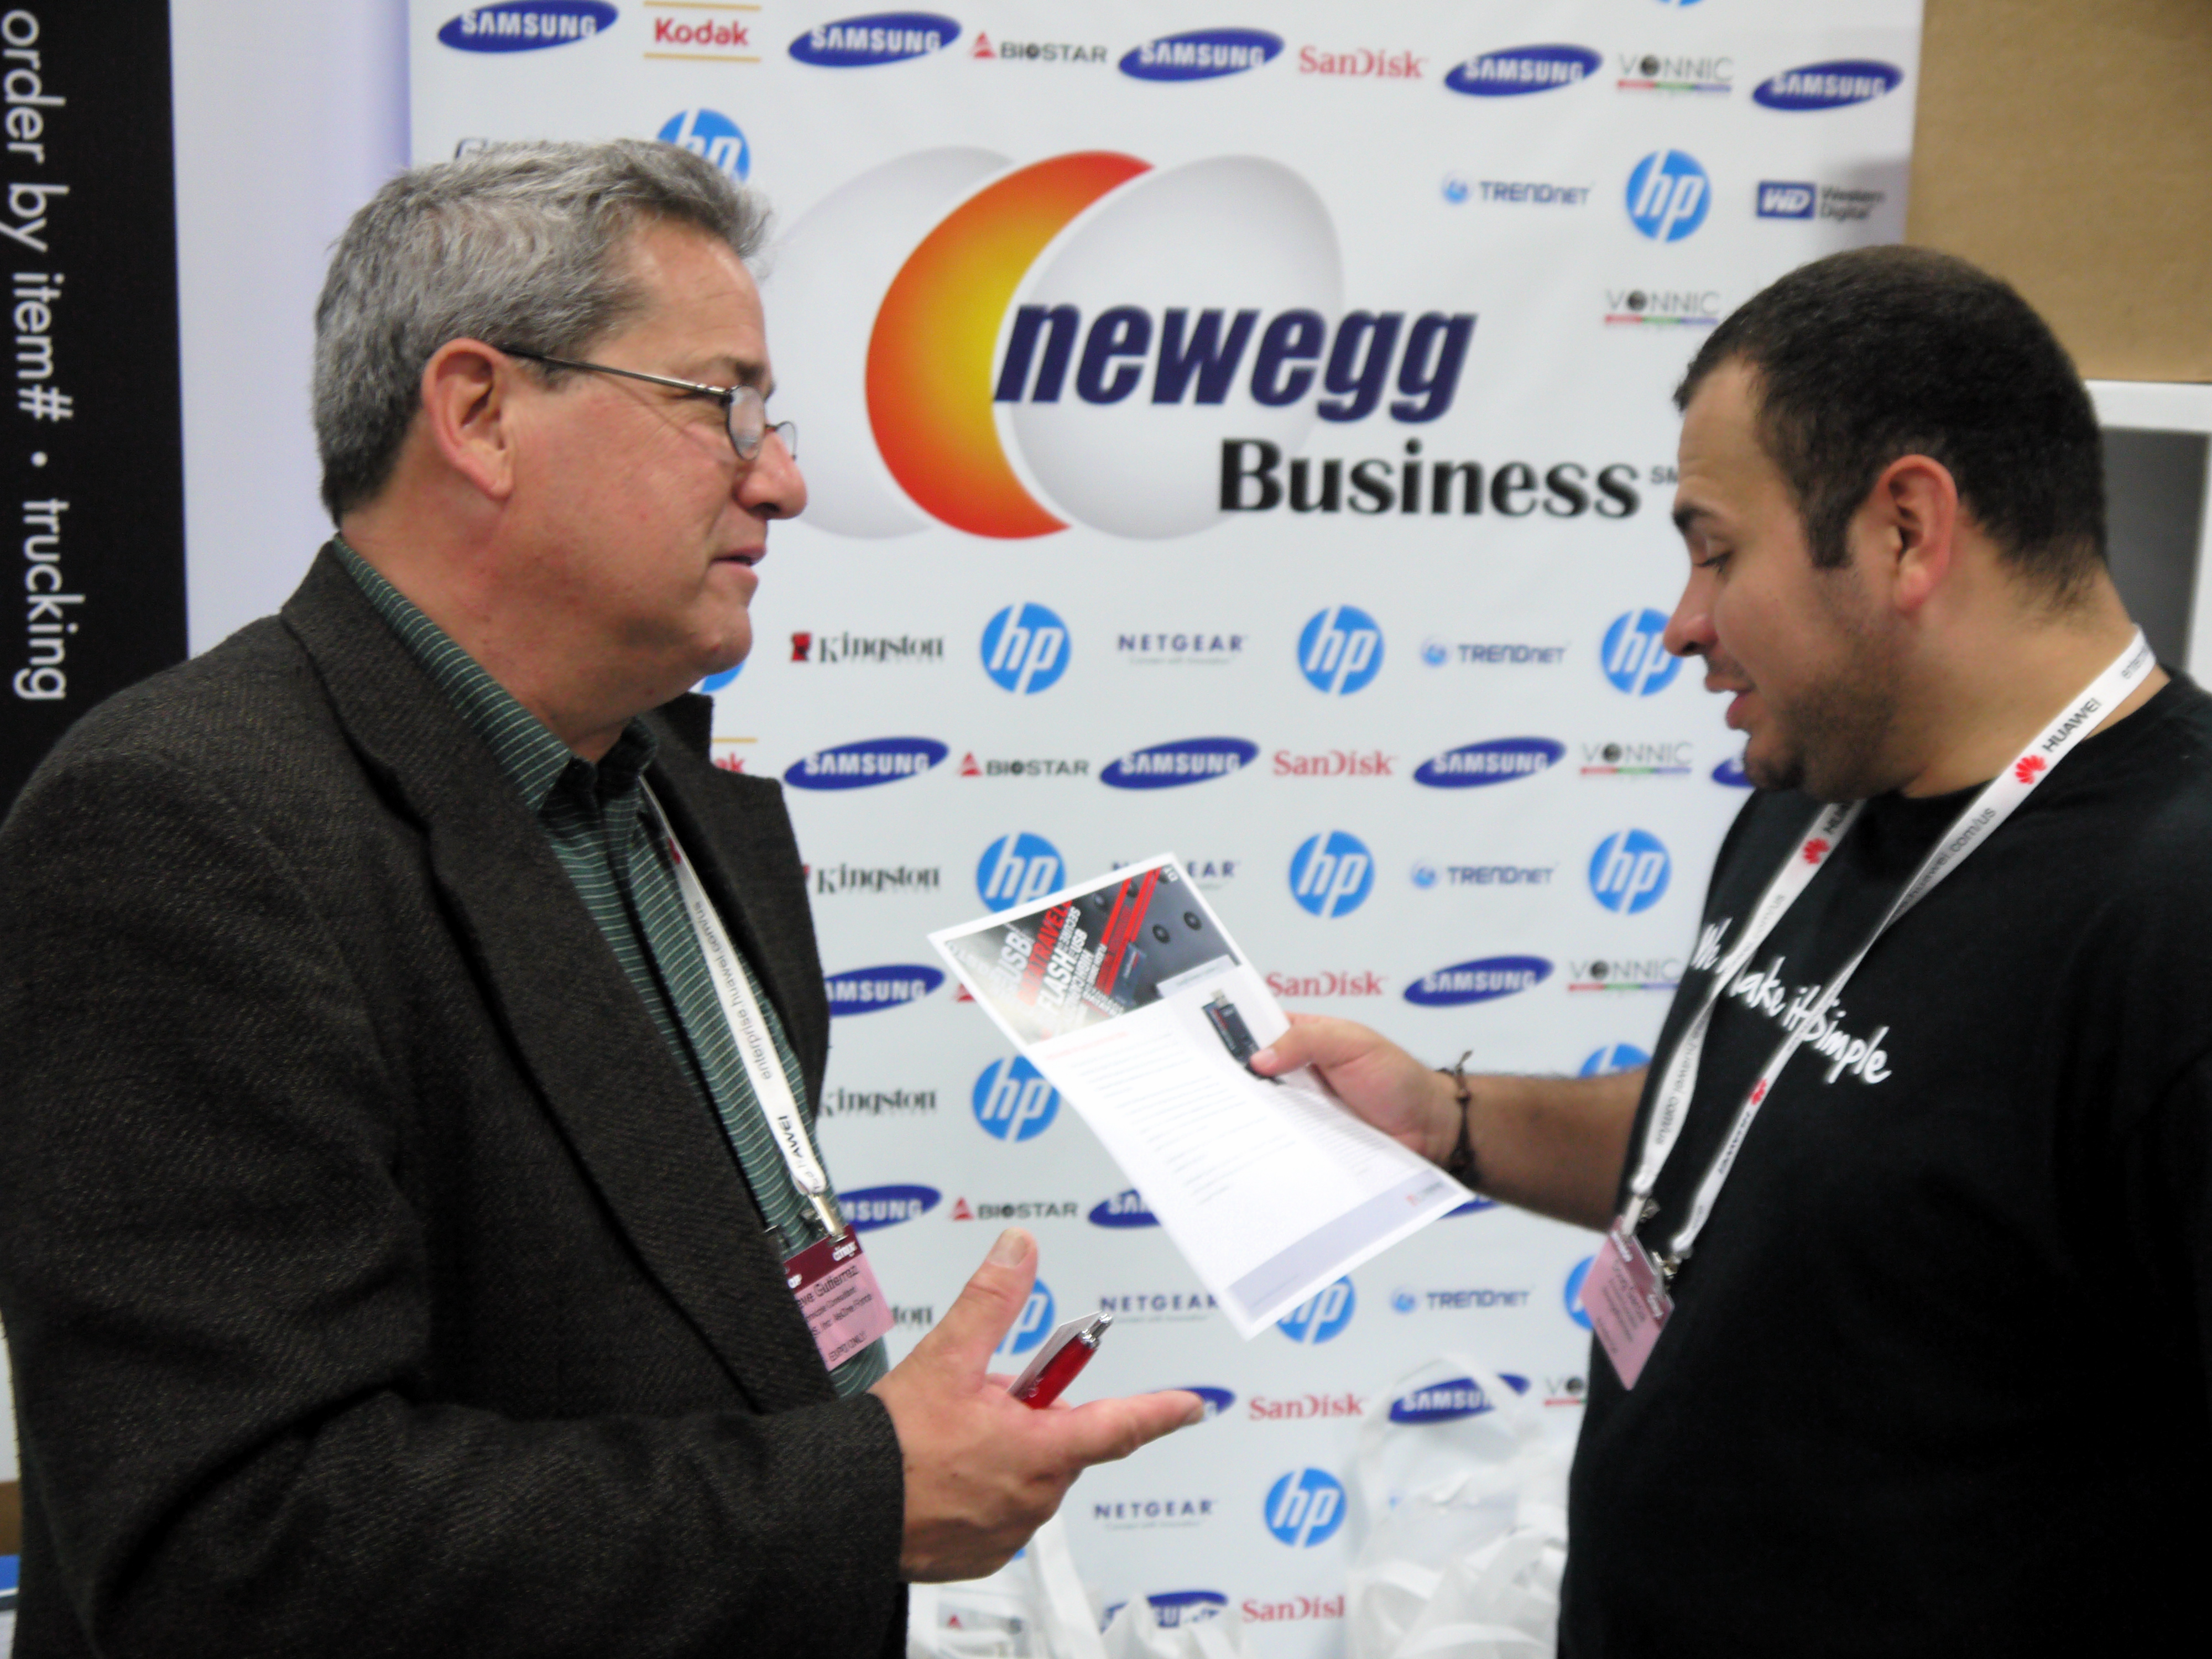 NeweggBusiness shines at Interop!